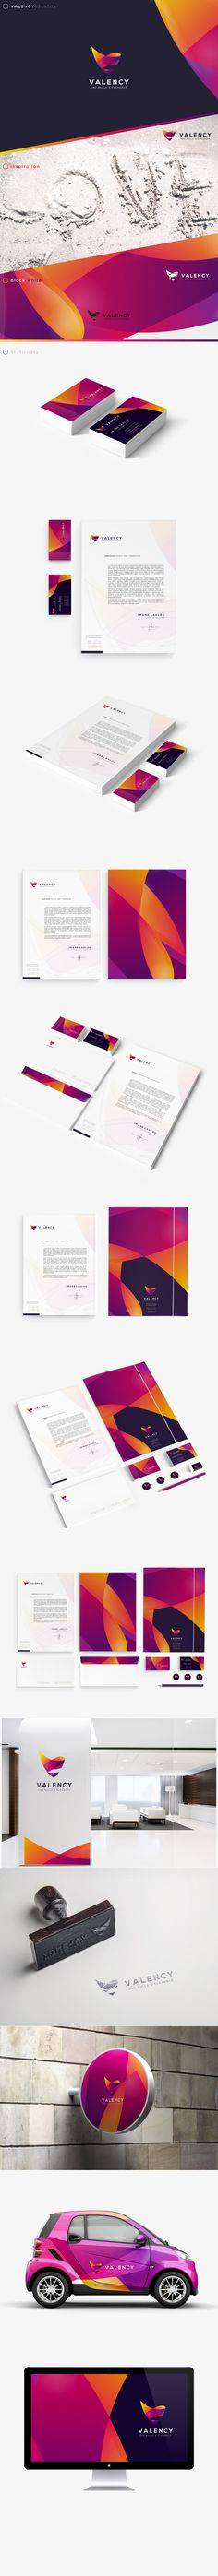 https://www.behance.net/gallery/21661885/Identity-Valency